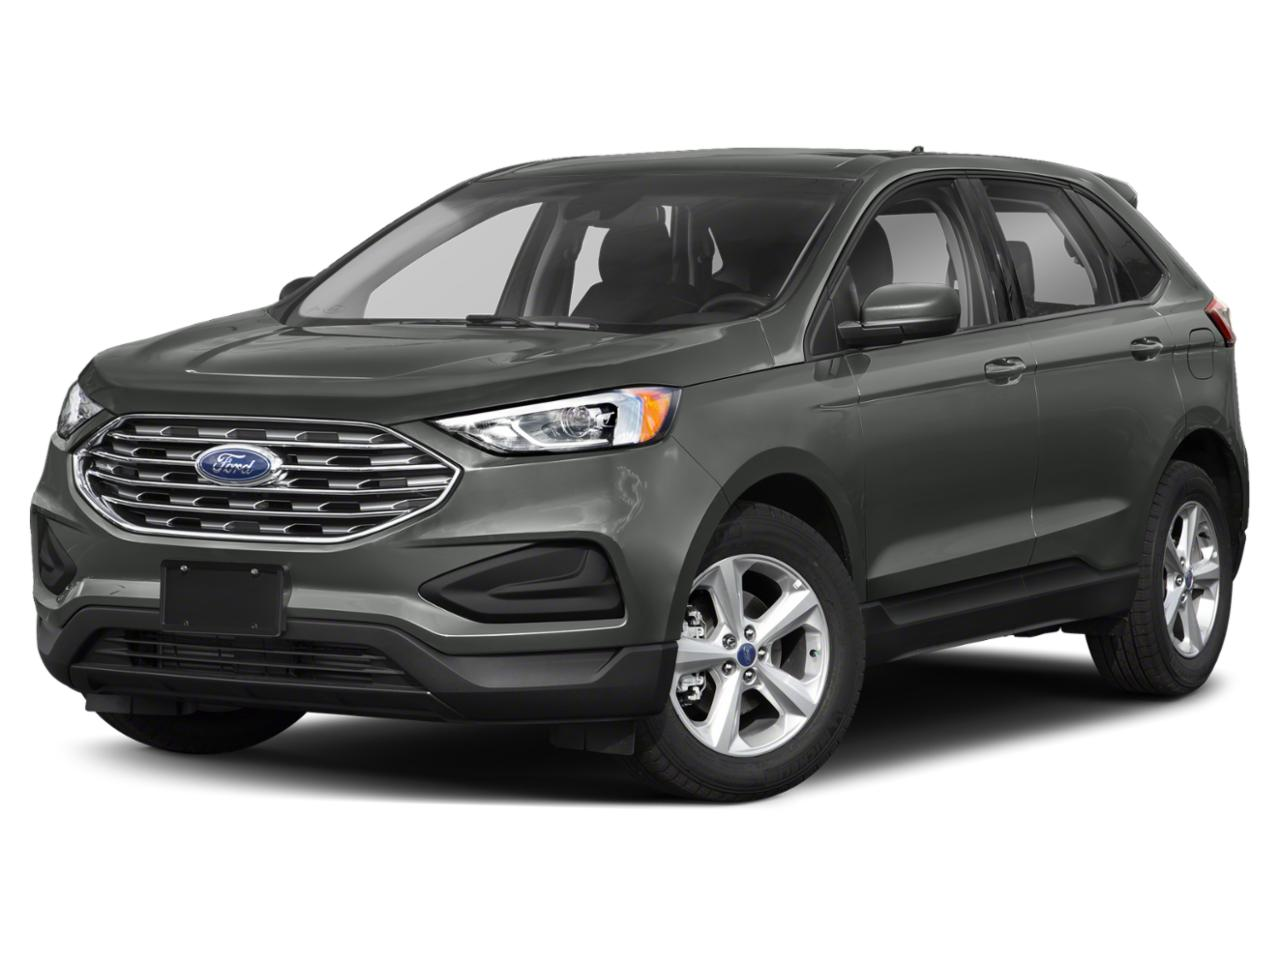 2019 Ford Edge Vehicle Photo in Anchorage, AK 99515